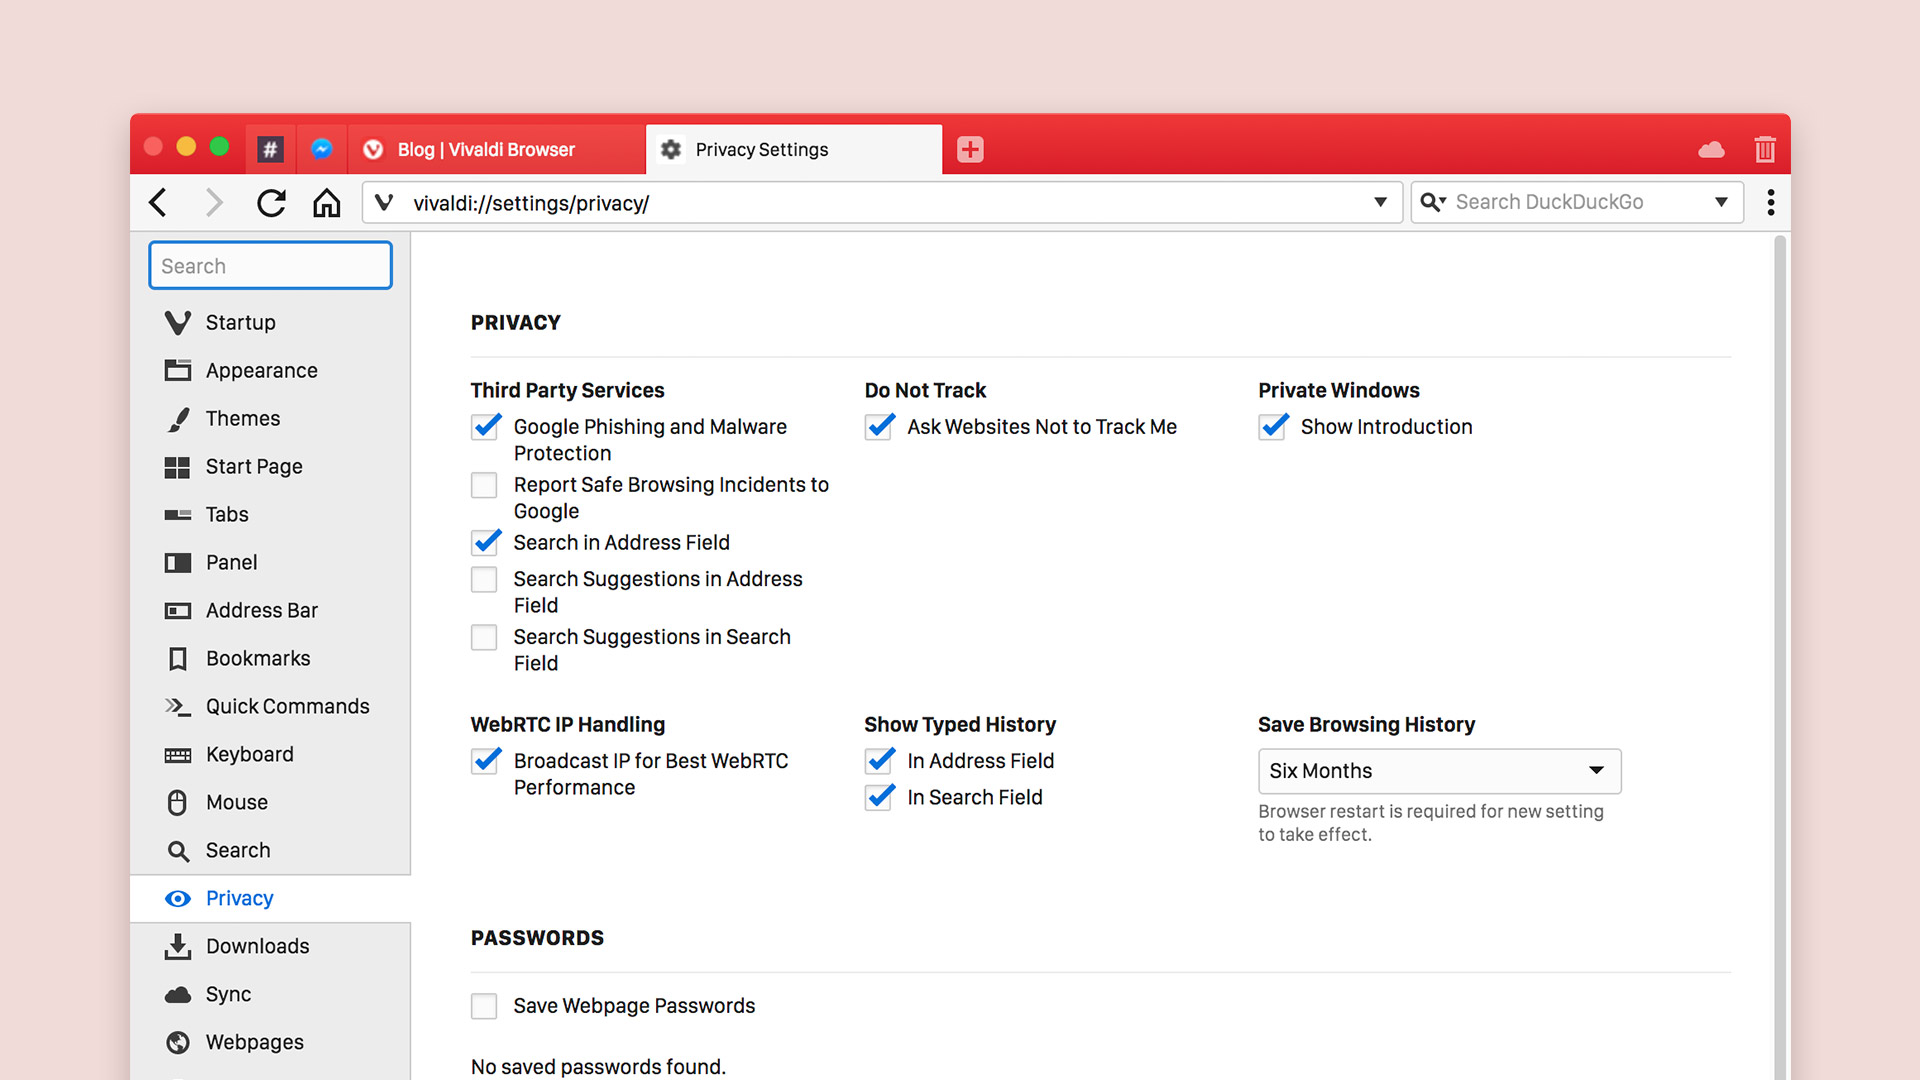 Privacy settings in the Vivaldi browser, including an option to enable or disable Google Phishing and Malware Protection